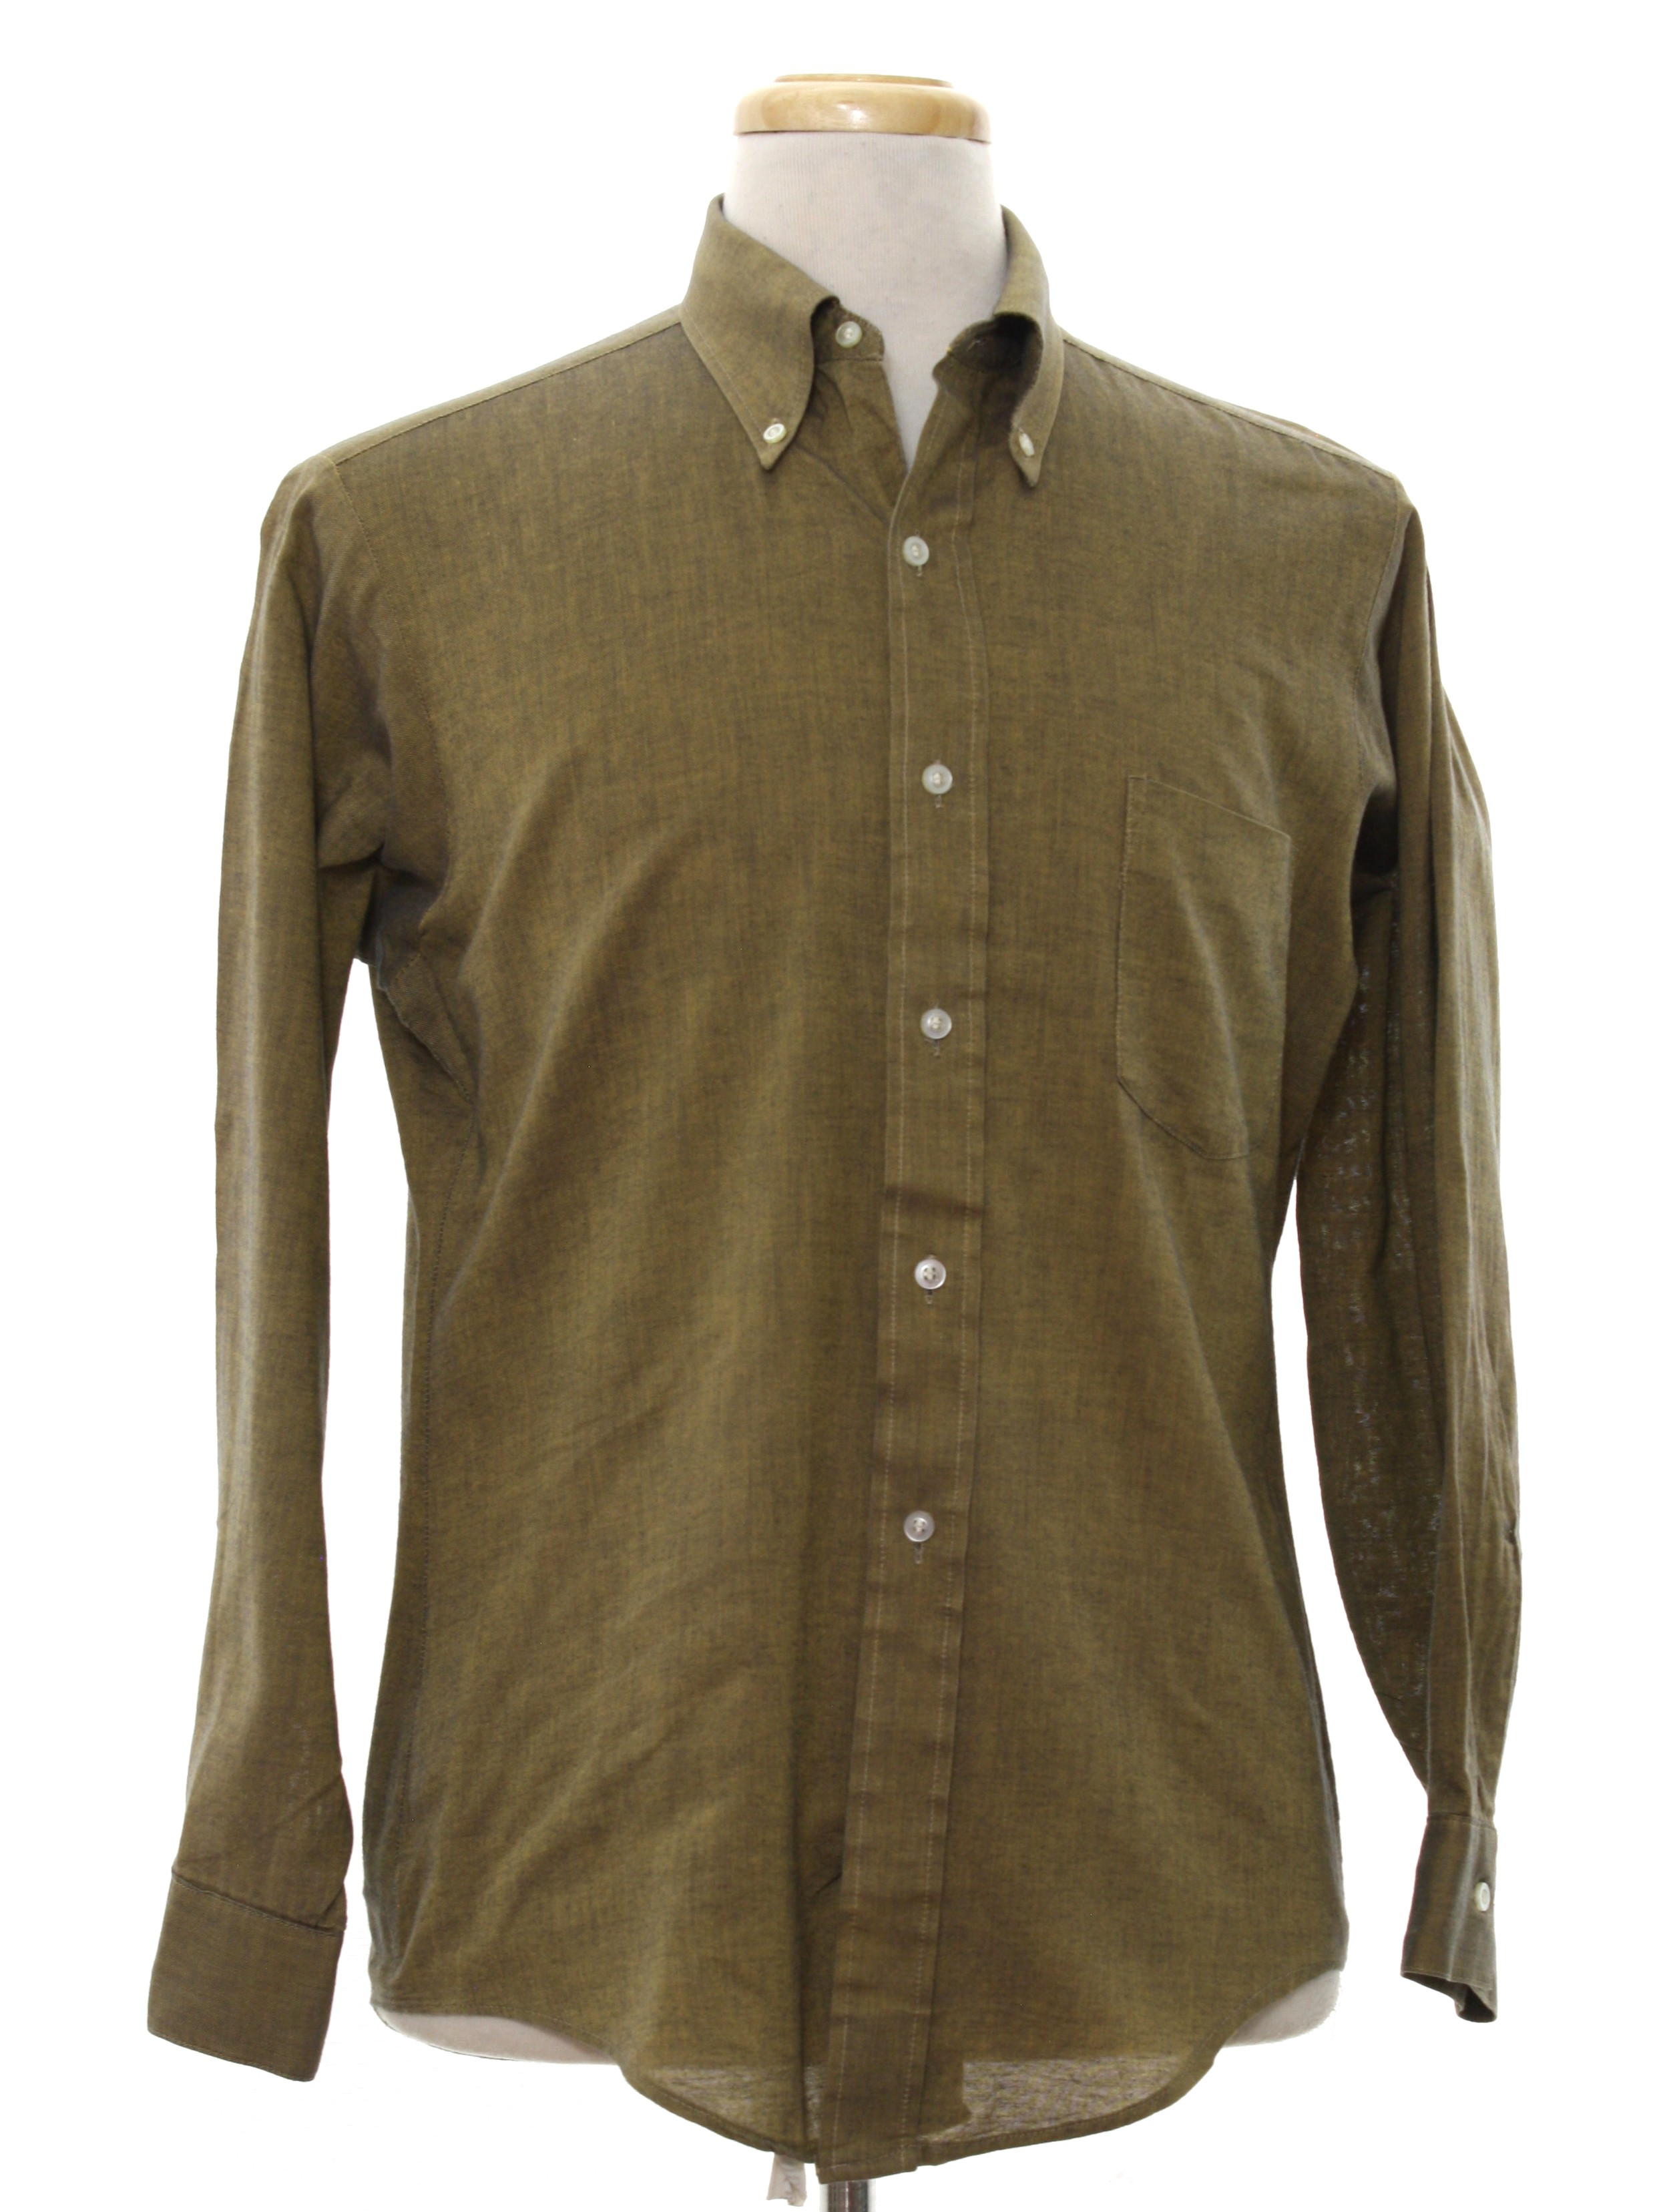 60 39 s vintage shirt early 60s 417 van heusen v taper for Olive green oxford shirt